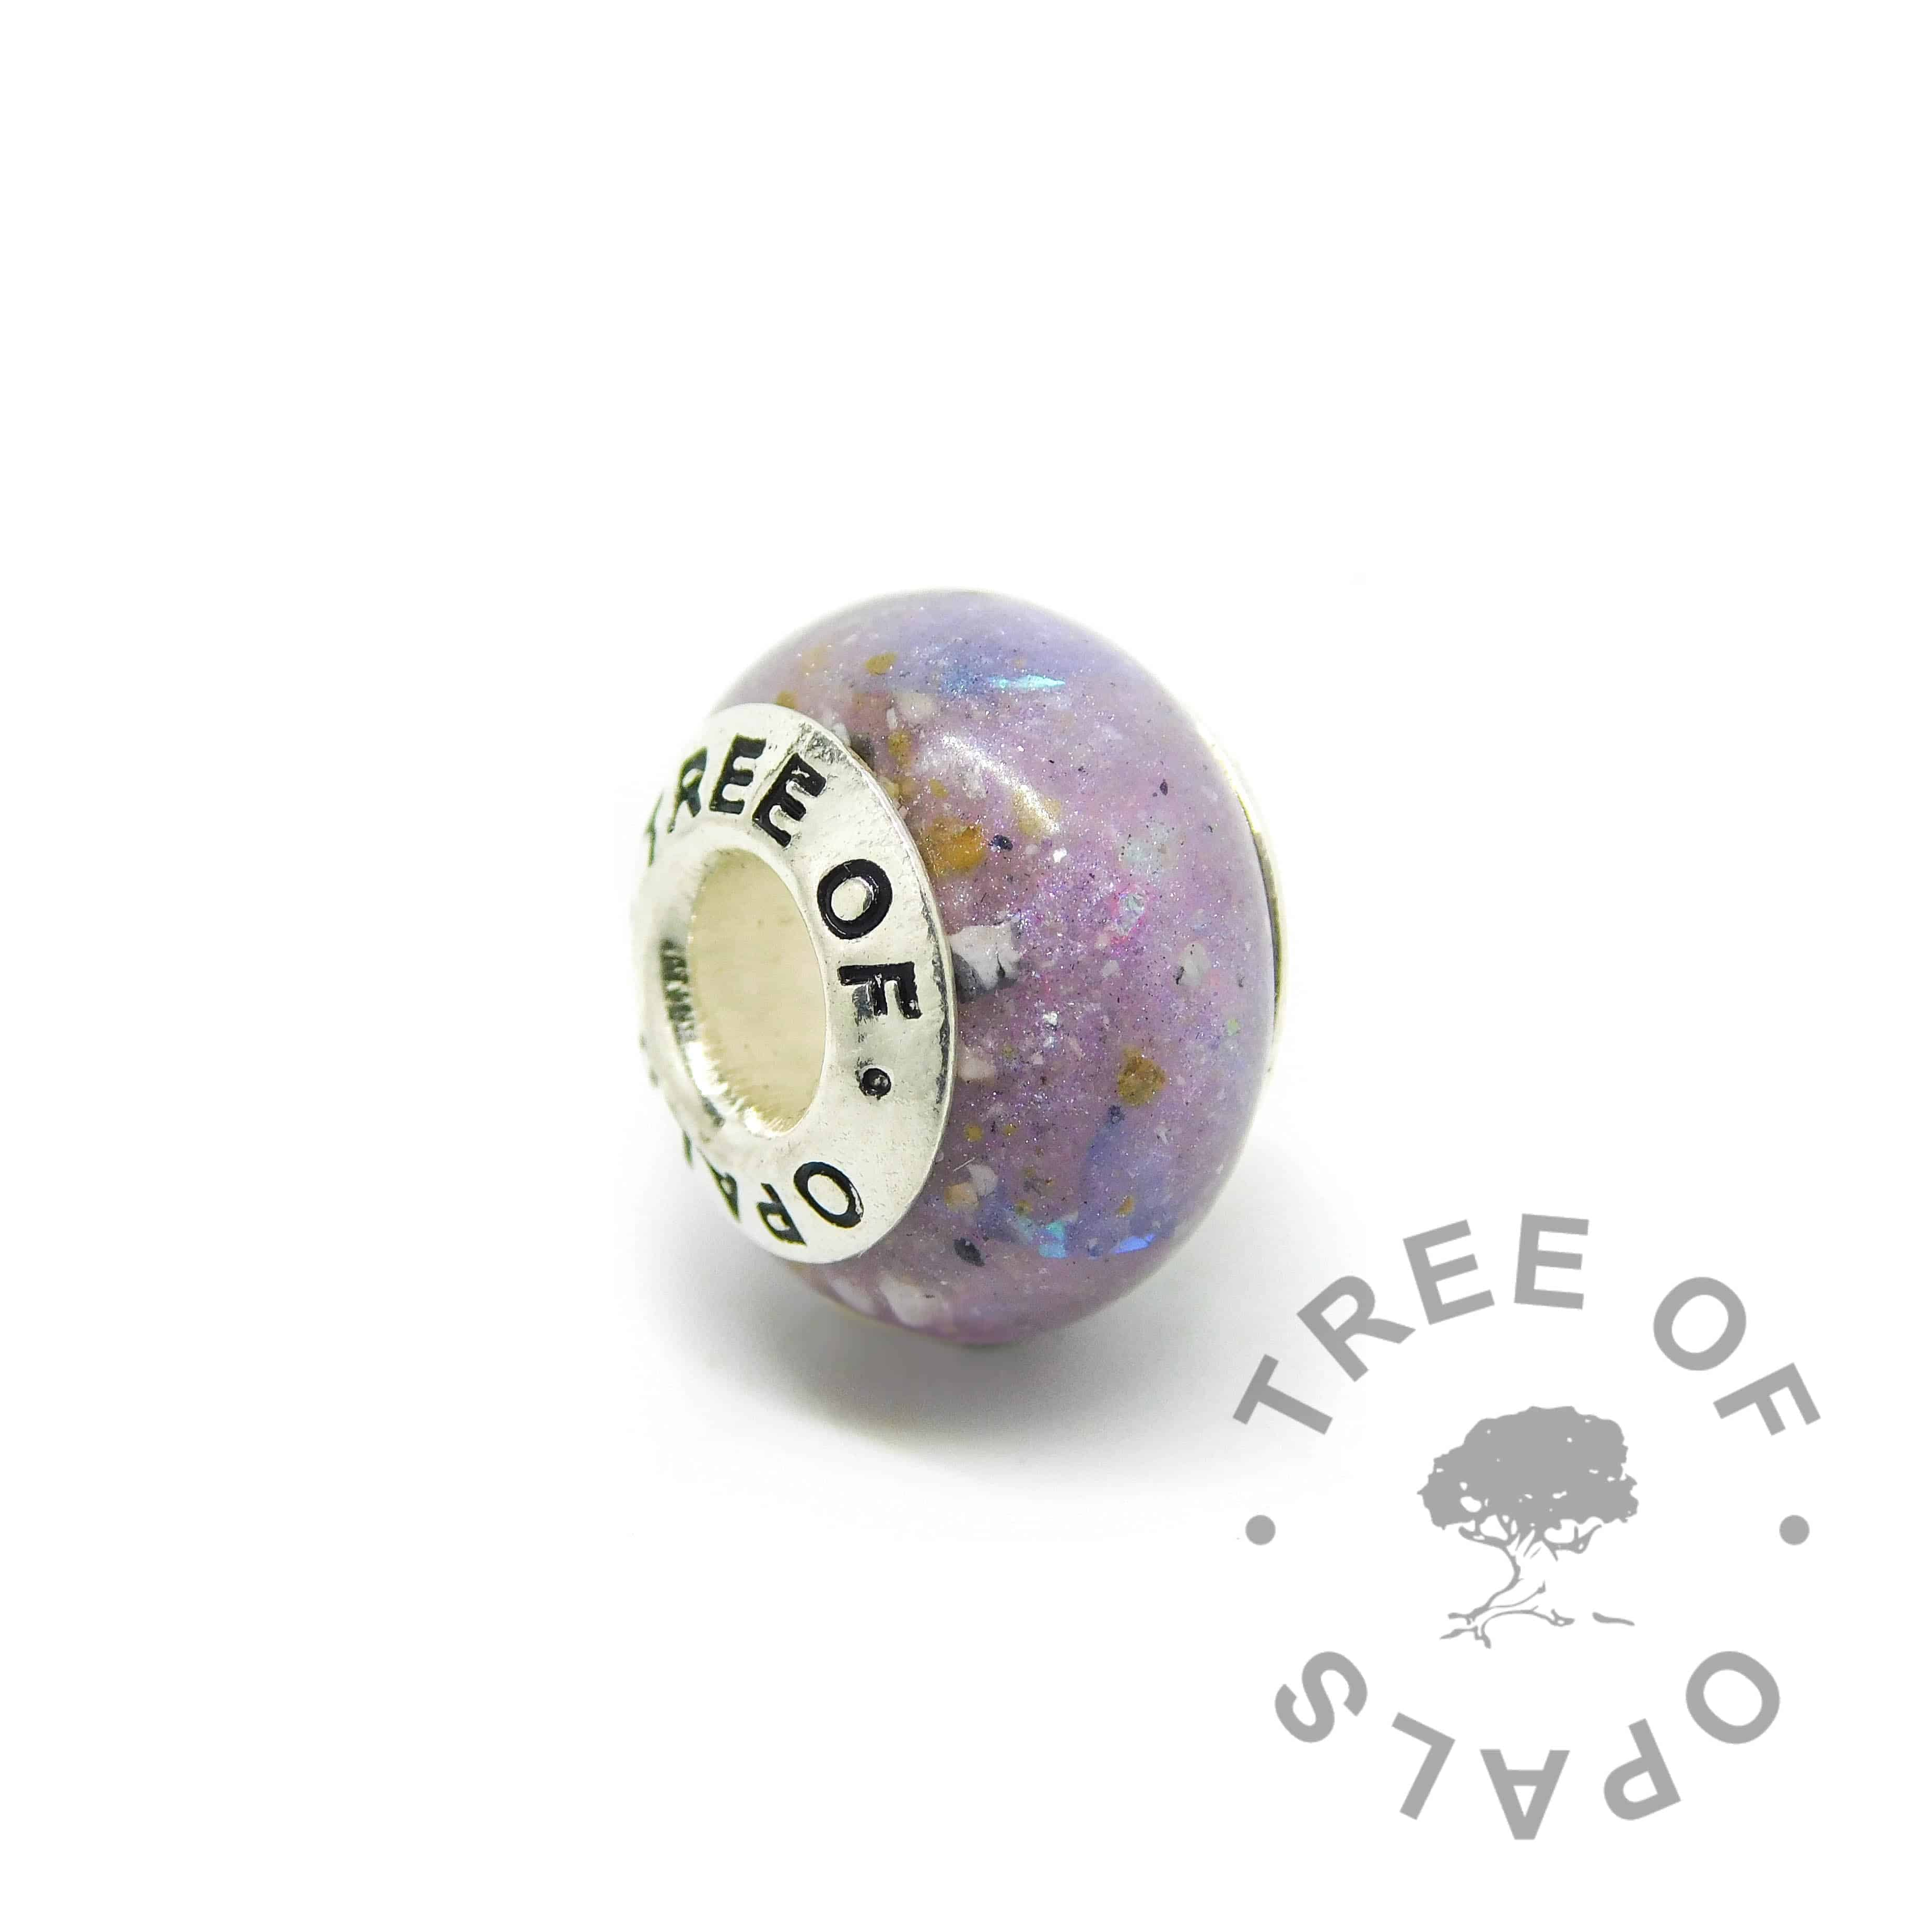 cremation ash charm with orchid purple resin sparkle mix, genuine diamond powder April birthstone. Solid sterling silver Tree of Opals signature core (925 stamped on the back). Watermarked copyright Tree of Opals memorial jewellery image